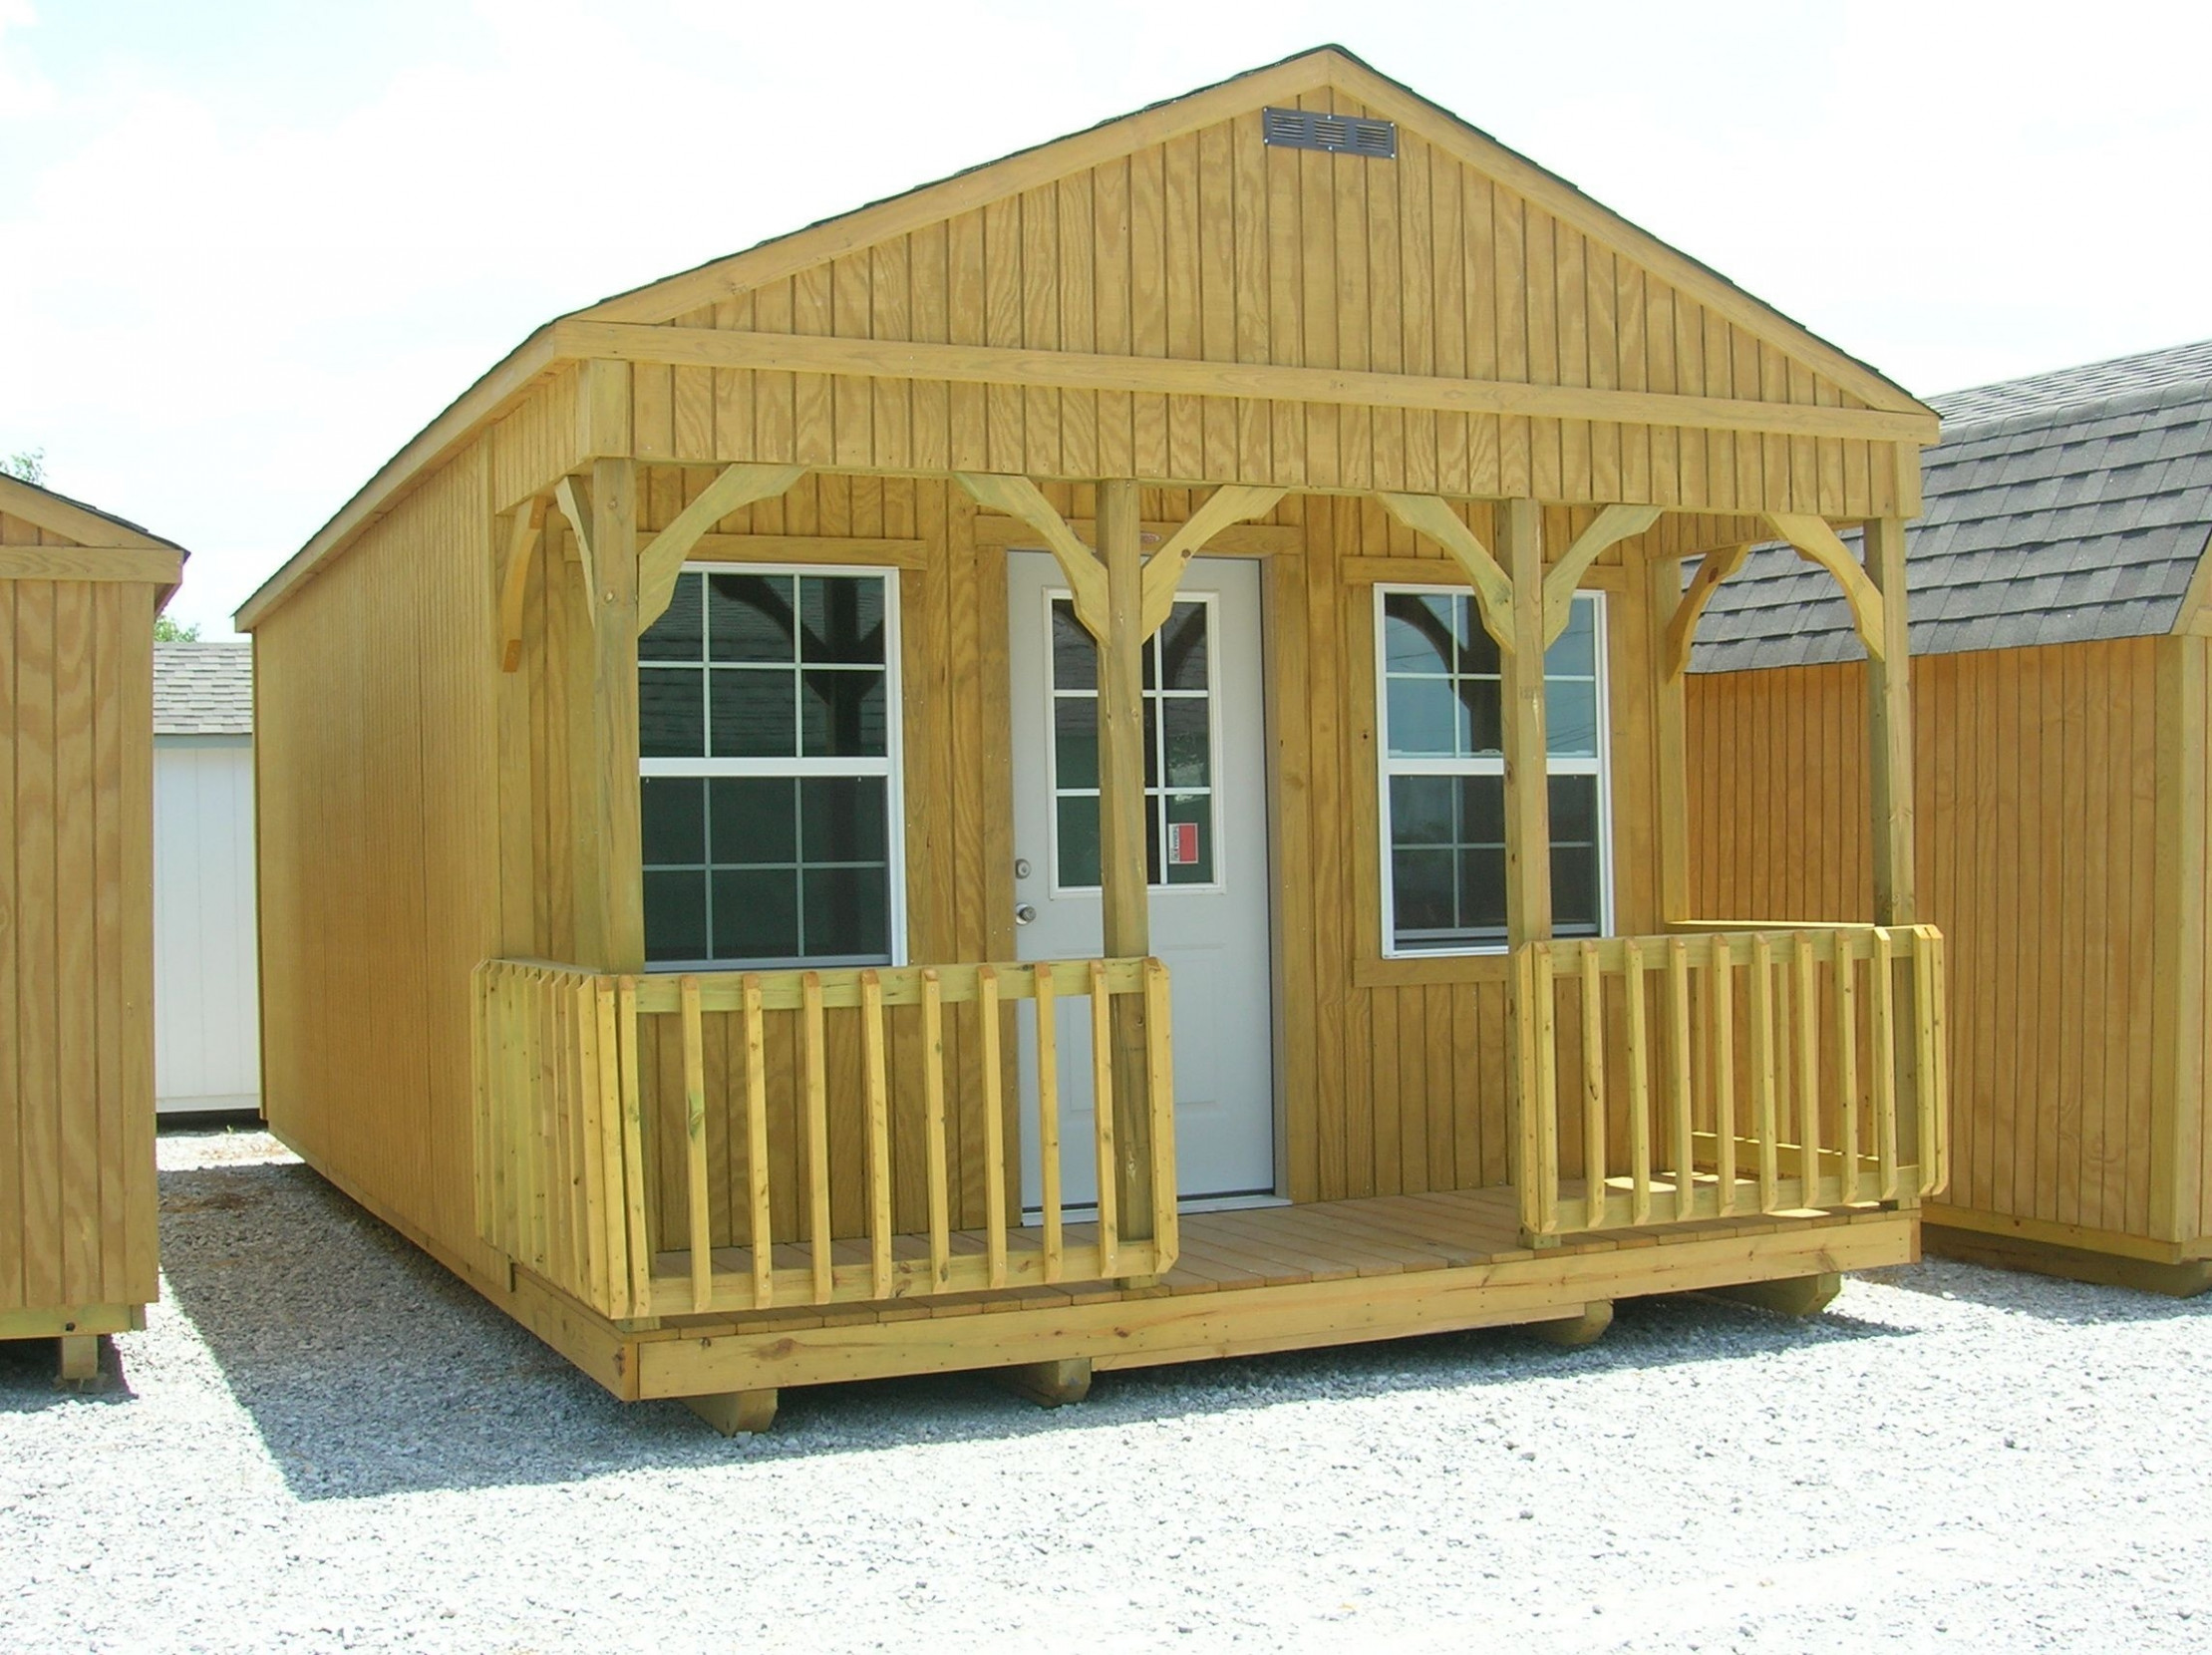 Portable Buildings Carports Carport Ideas : Carport Ideas Portable Buildings With Carport